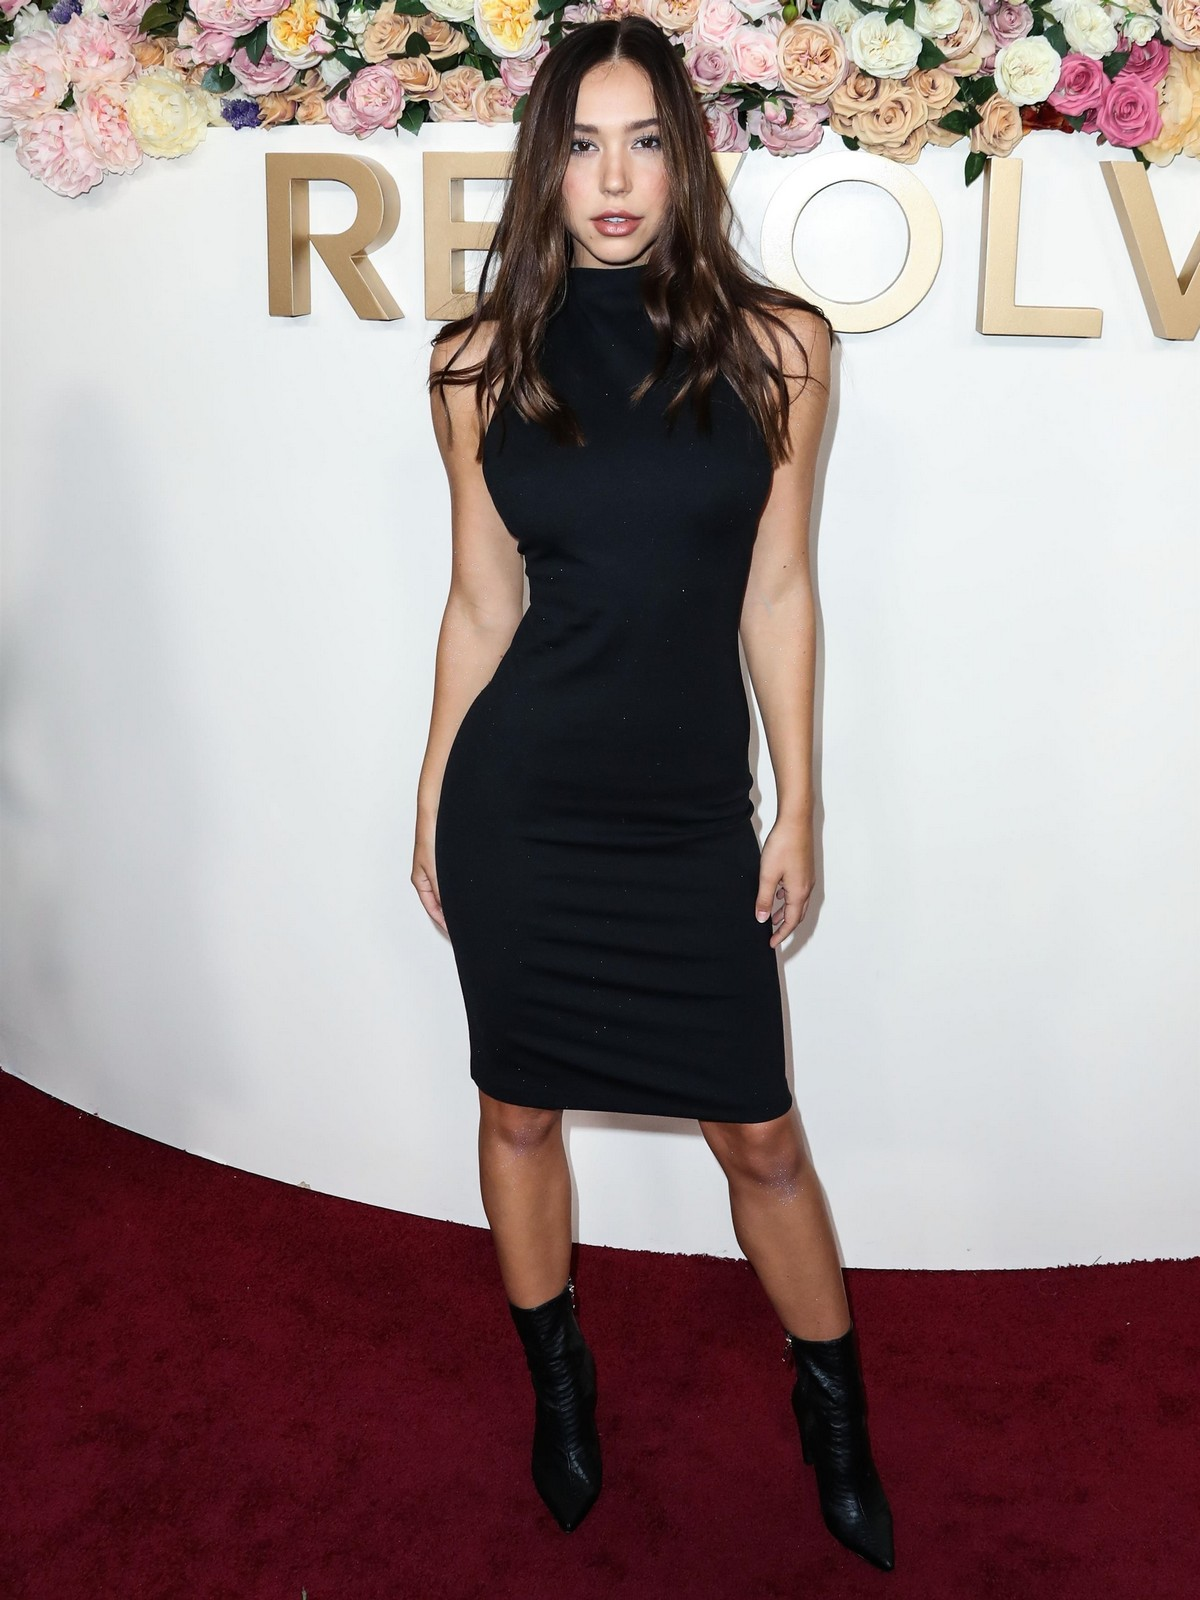 Alexis Ren in Black Dress at 3rd Annual #Revolve Awards in Hollywood 2019/11/15 11